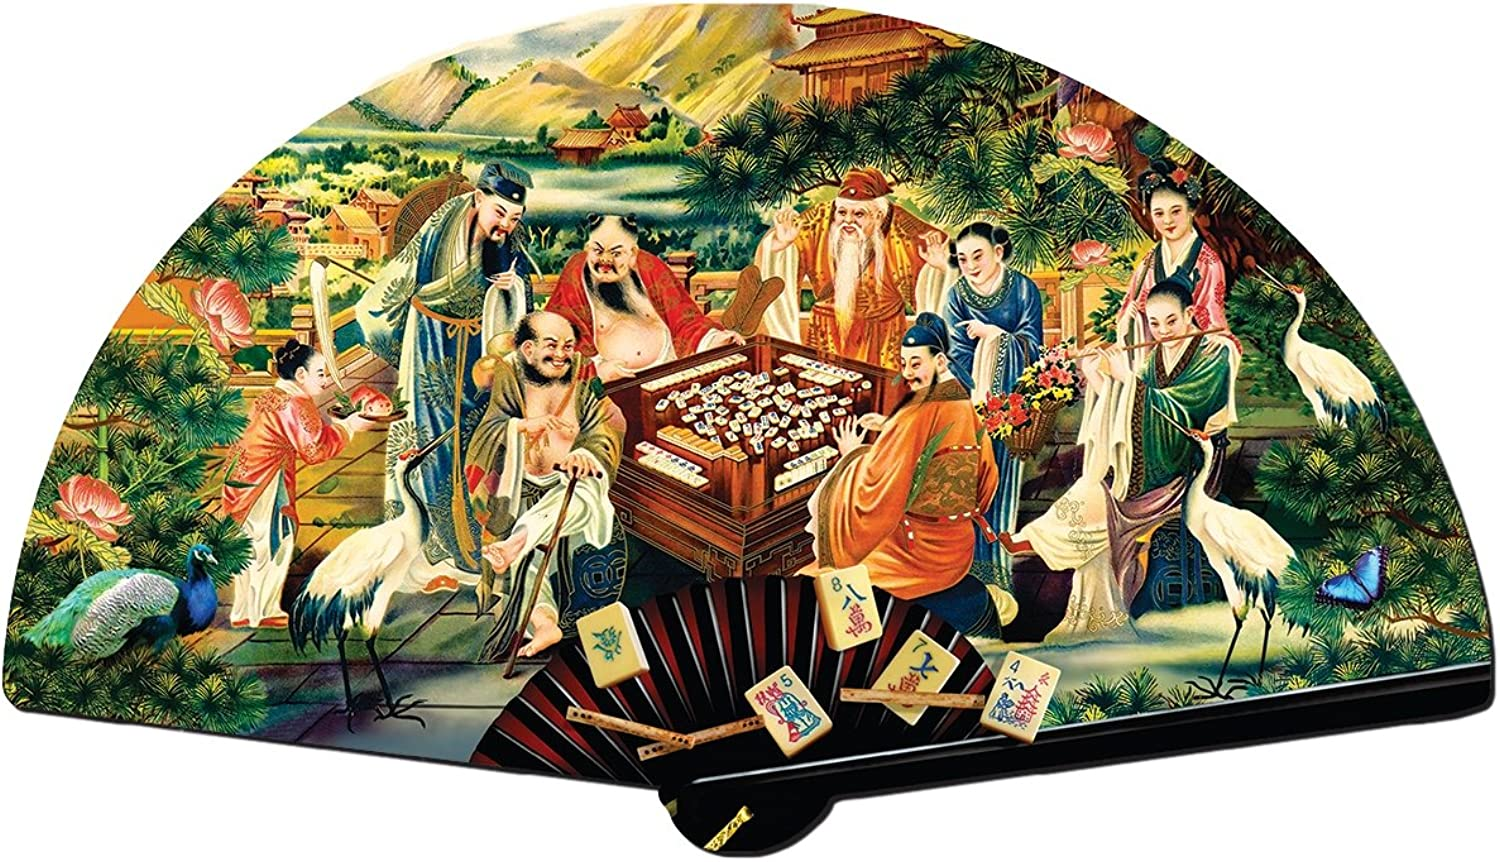 The Eight Immortals Playing Mah Jongg 1000pc Shaped Jigsaw Puzzle by SunsOut